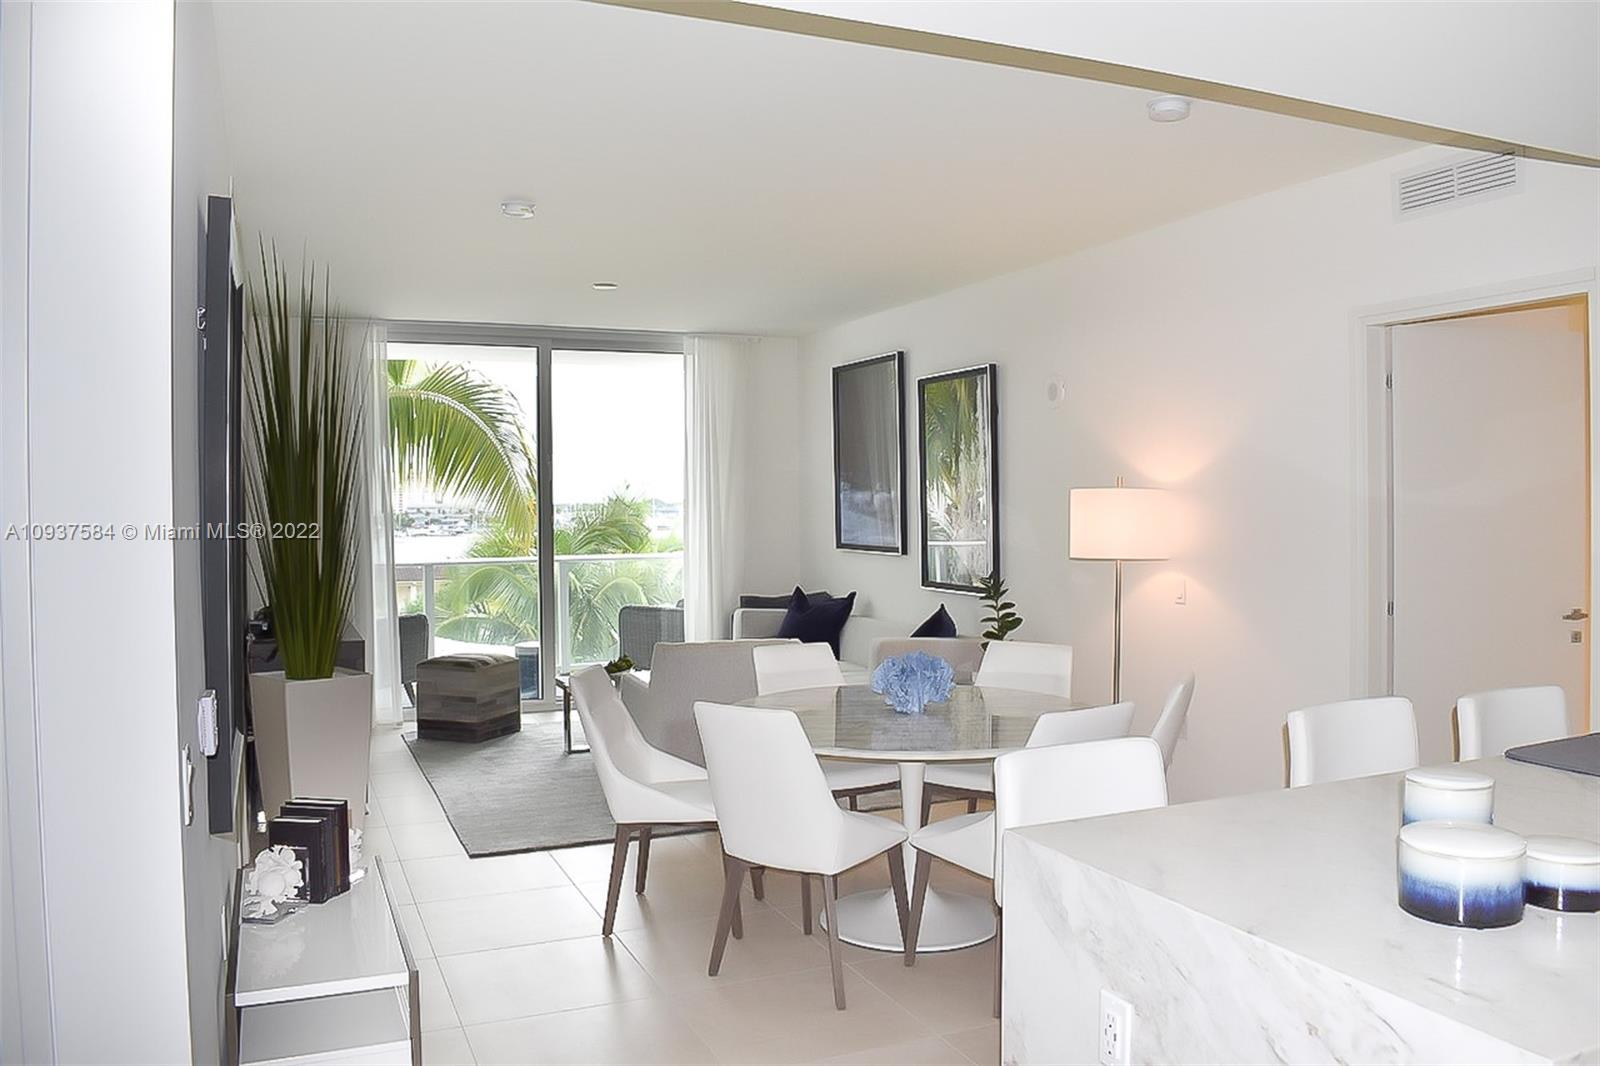 Beautiful 2 bedroom 2/1 bath plus Den!! brand-new contemporary building with five-star amenities surrounded by the Intracoastal Waterway and just 90 steps to the white sands of Fort Lauderdale beach. Inside residence 502, you will find 1,286 SF of open floor plan space, marble master bathroom with separate tub and shower, high end appliances, quartz countertops, 9-foot floor to ceiling windows, furnished by STEVEN-G . Relax on your balcony and catch an incredible sunset falling over downtown Fort Lauderdale. Enjoy resort-style amenities that include two pools, summer kitchen, theater room, fitness center, sauna, club room with kitchen, dining, and billiard lounge, 24-hour valet parking, and more — pet-friendly condo with no rental restrictions.